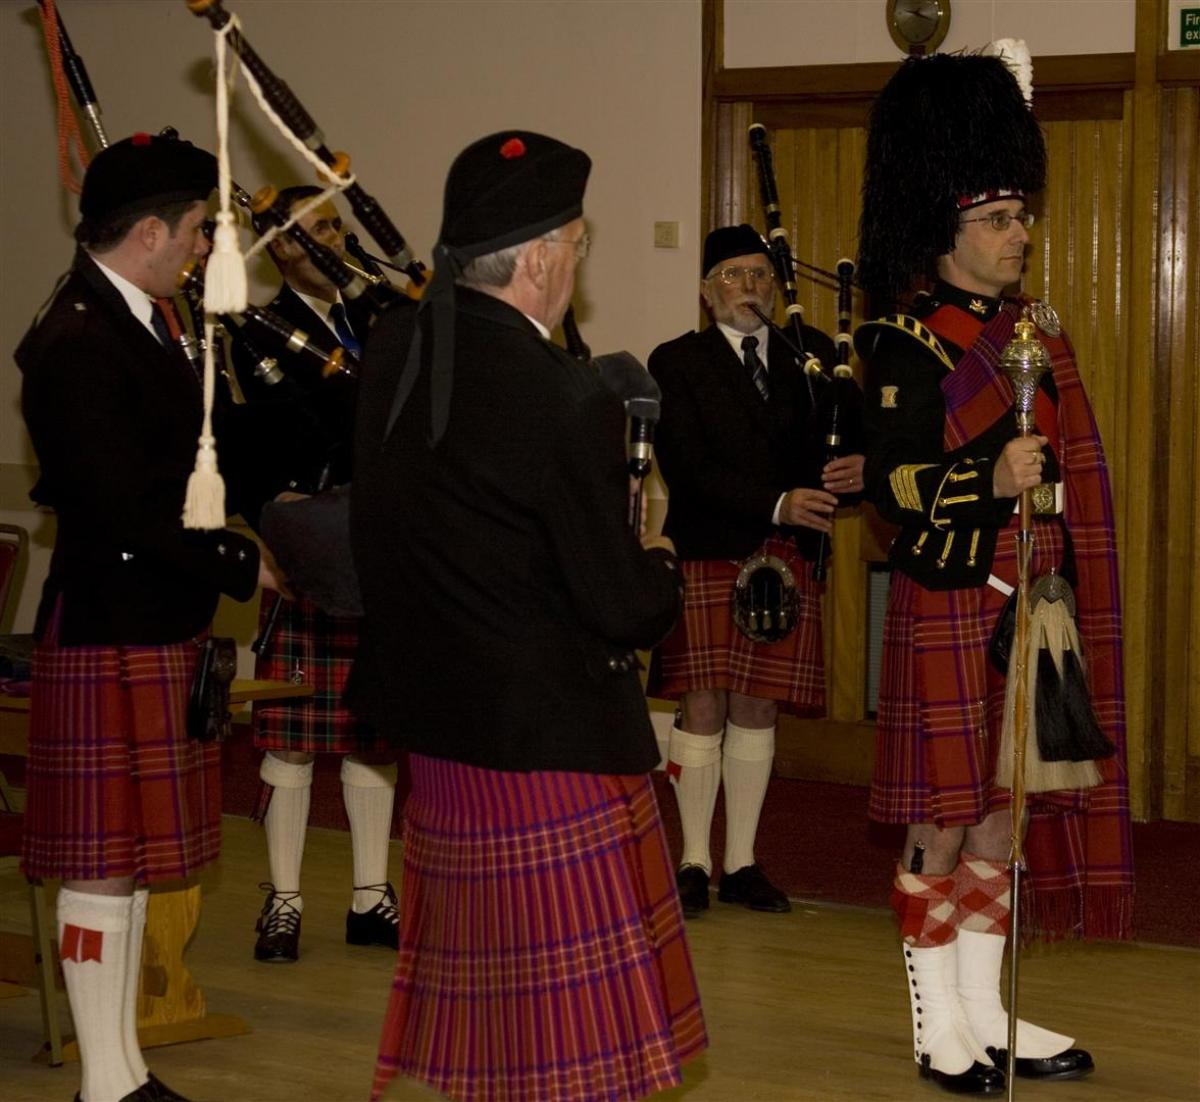 2013 Presentation to Banchory Pipe Band - BL 15 (Large)